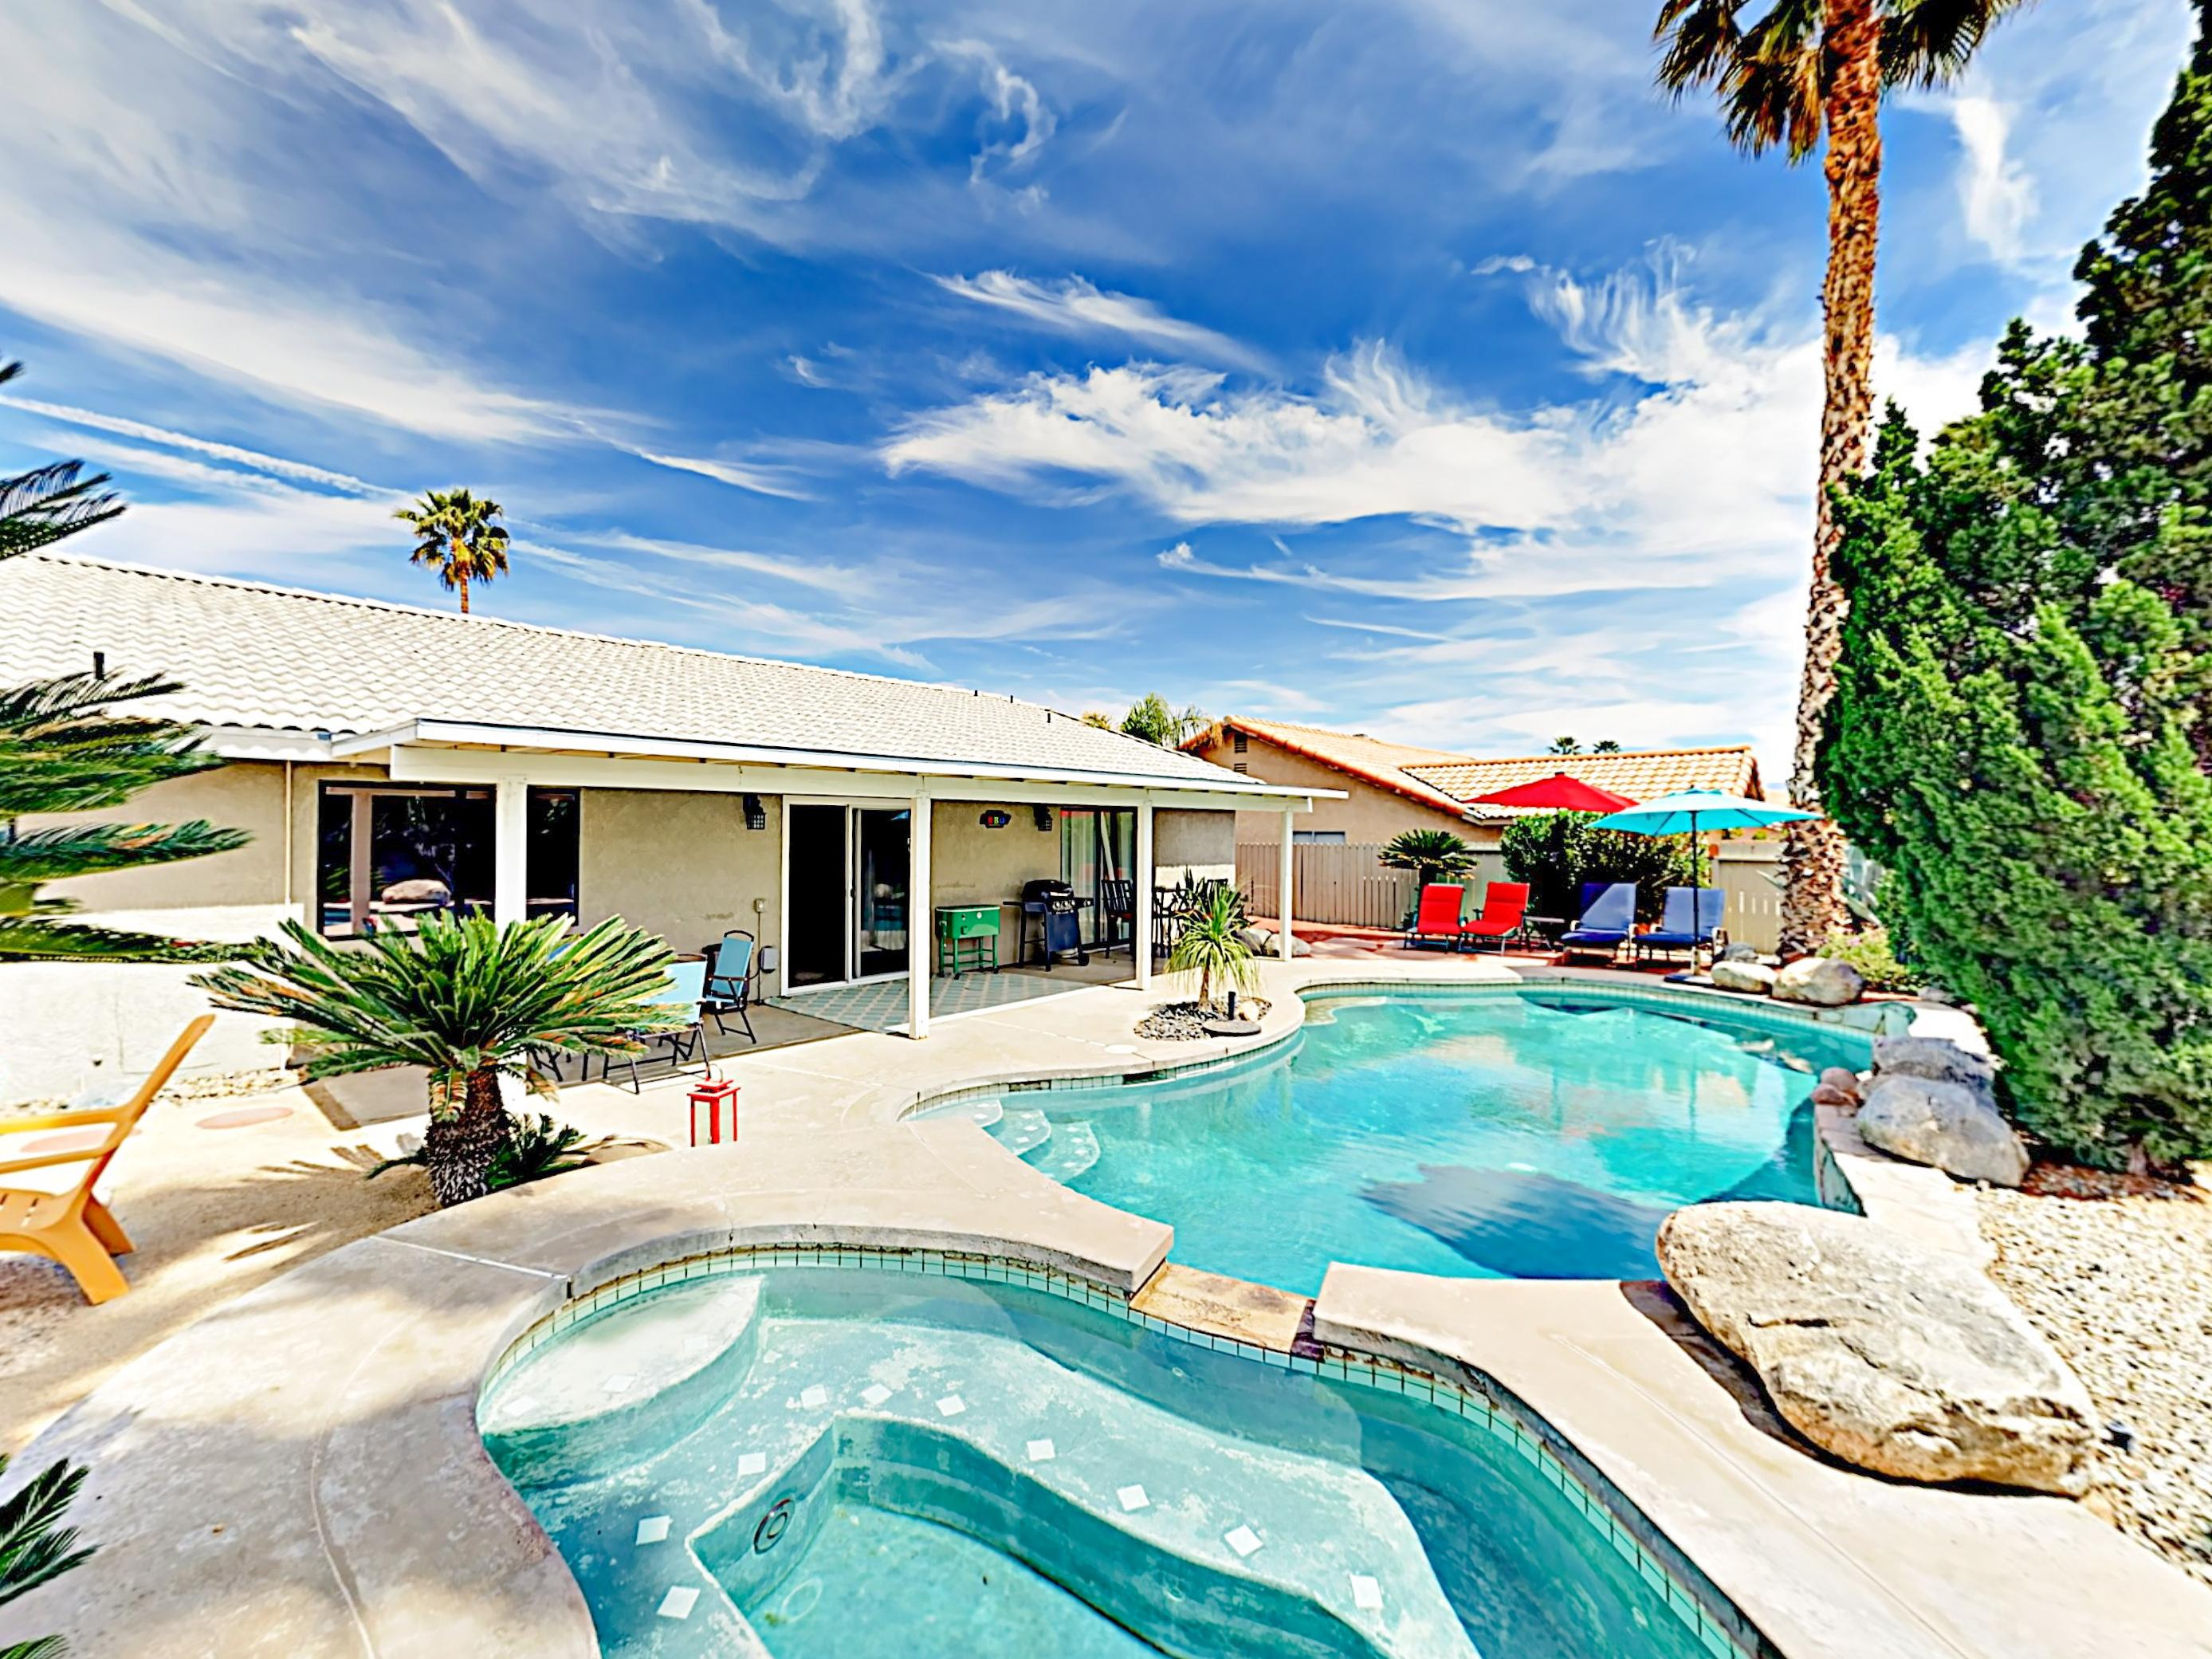 Welcome to Cathedral City! This desert oasis is professionally managed by TurnKey Vacation Rentals.